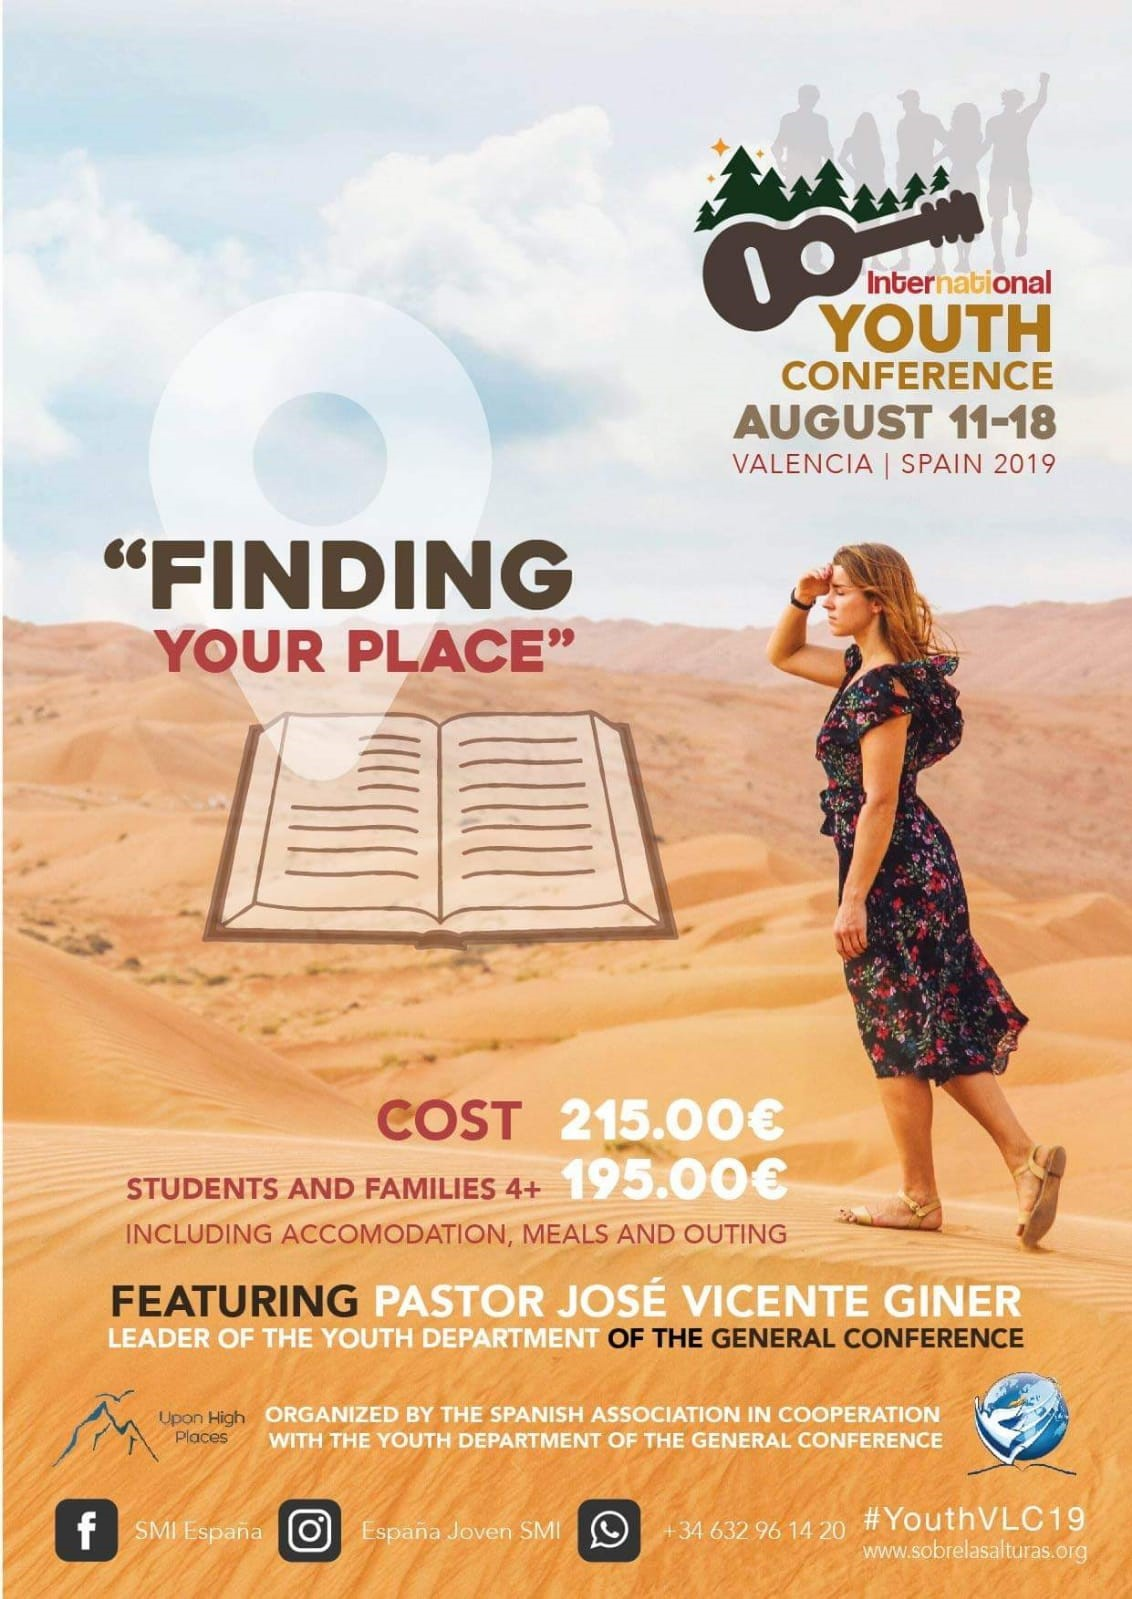 International Youth Conference